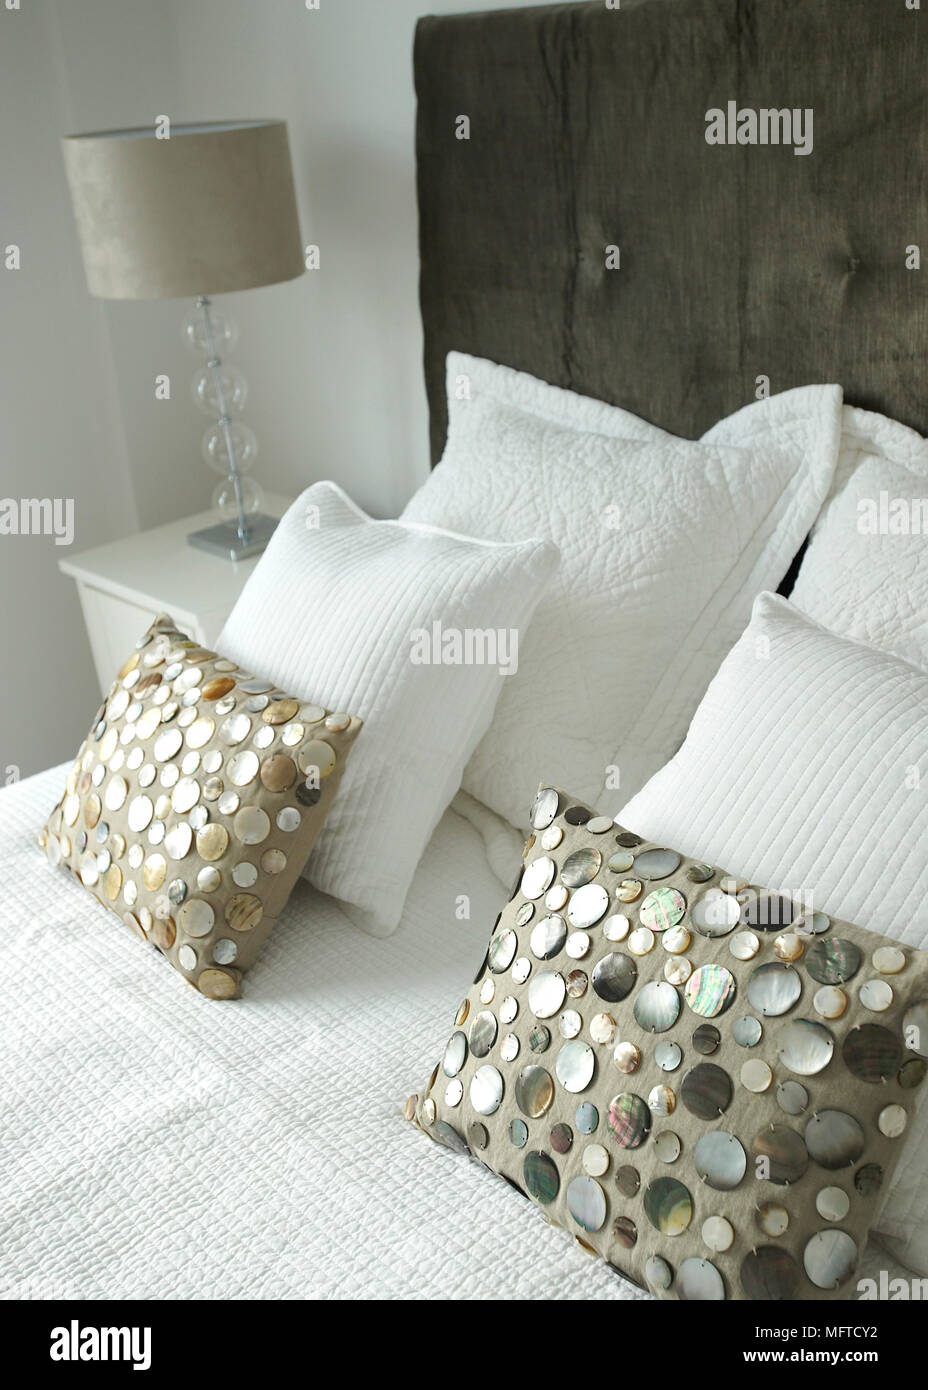 Avalon Cuscini.Textured Cushions On Double Bed With Upholstered Headboard Stock